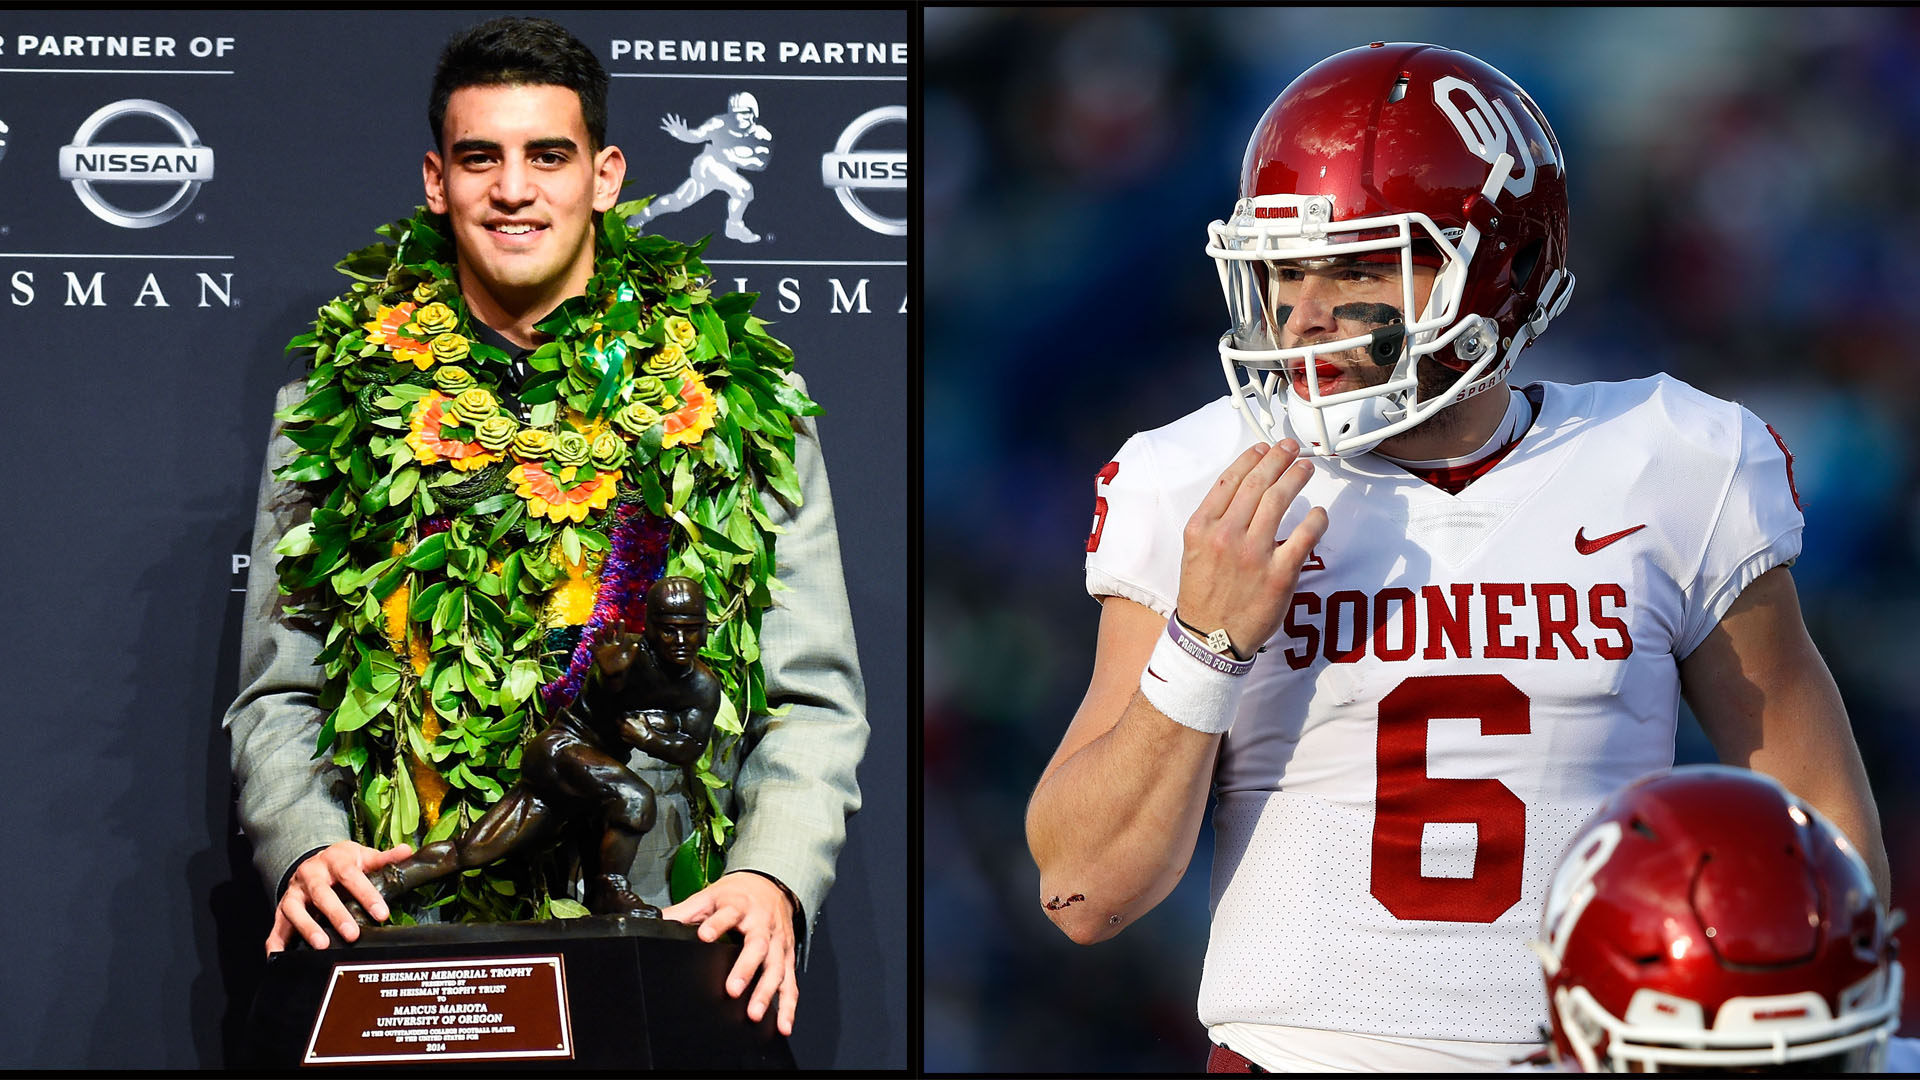 Marcus-mariota-left-and-baker-mayfield-right_1d20iy1vgks4h1q9duu0segsp6